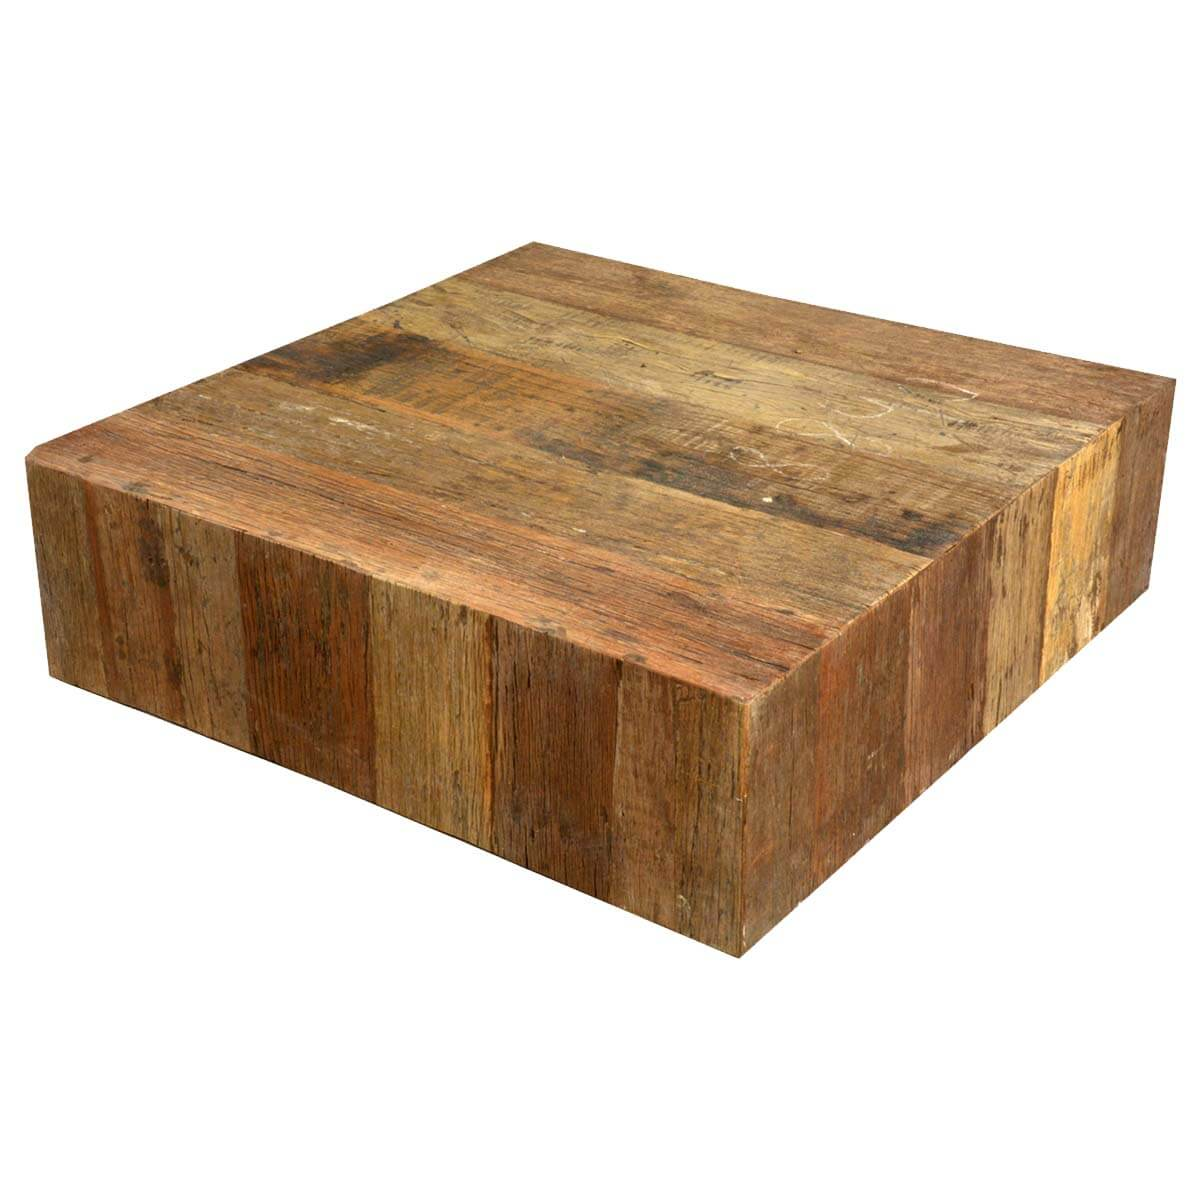 Unique Rustic Railroad Reclaimed Wood Square Coffee Table Ebay